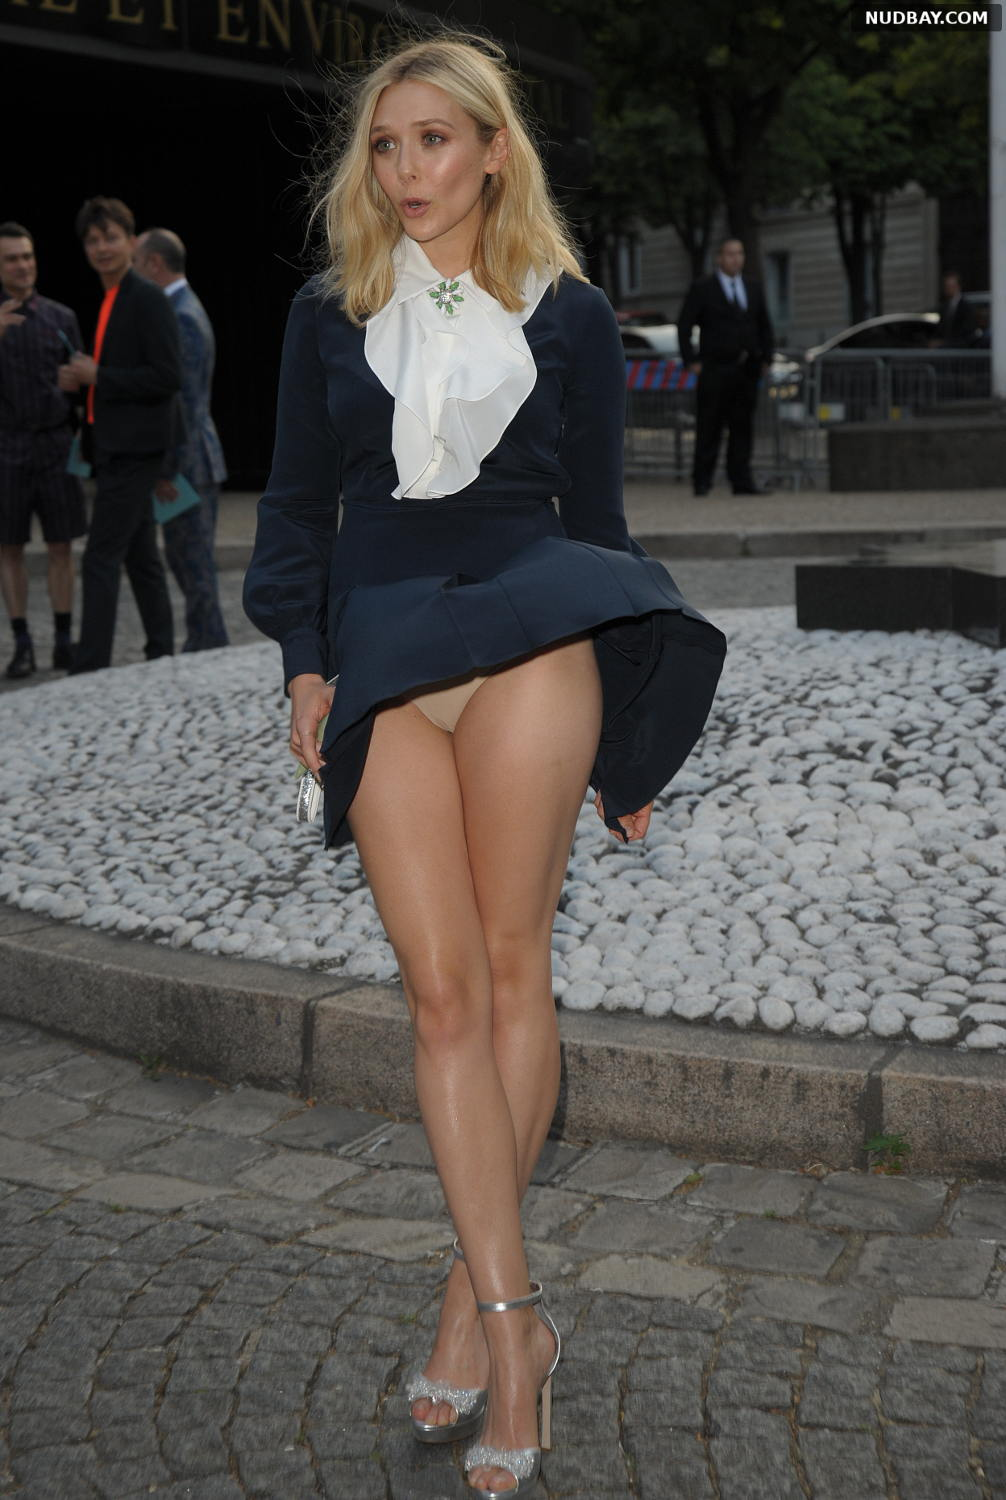 Elizabeth Olsen Upskirt at Miu Miu Fragrance And Croisiere 2016 Collection Launch in Paris Jul 04 2015